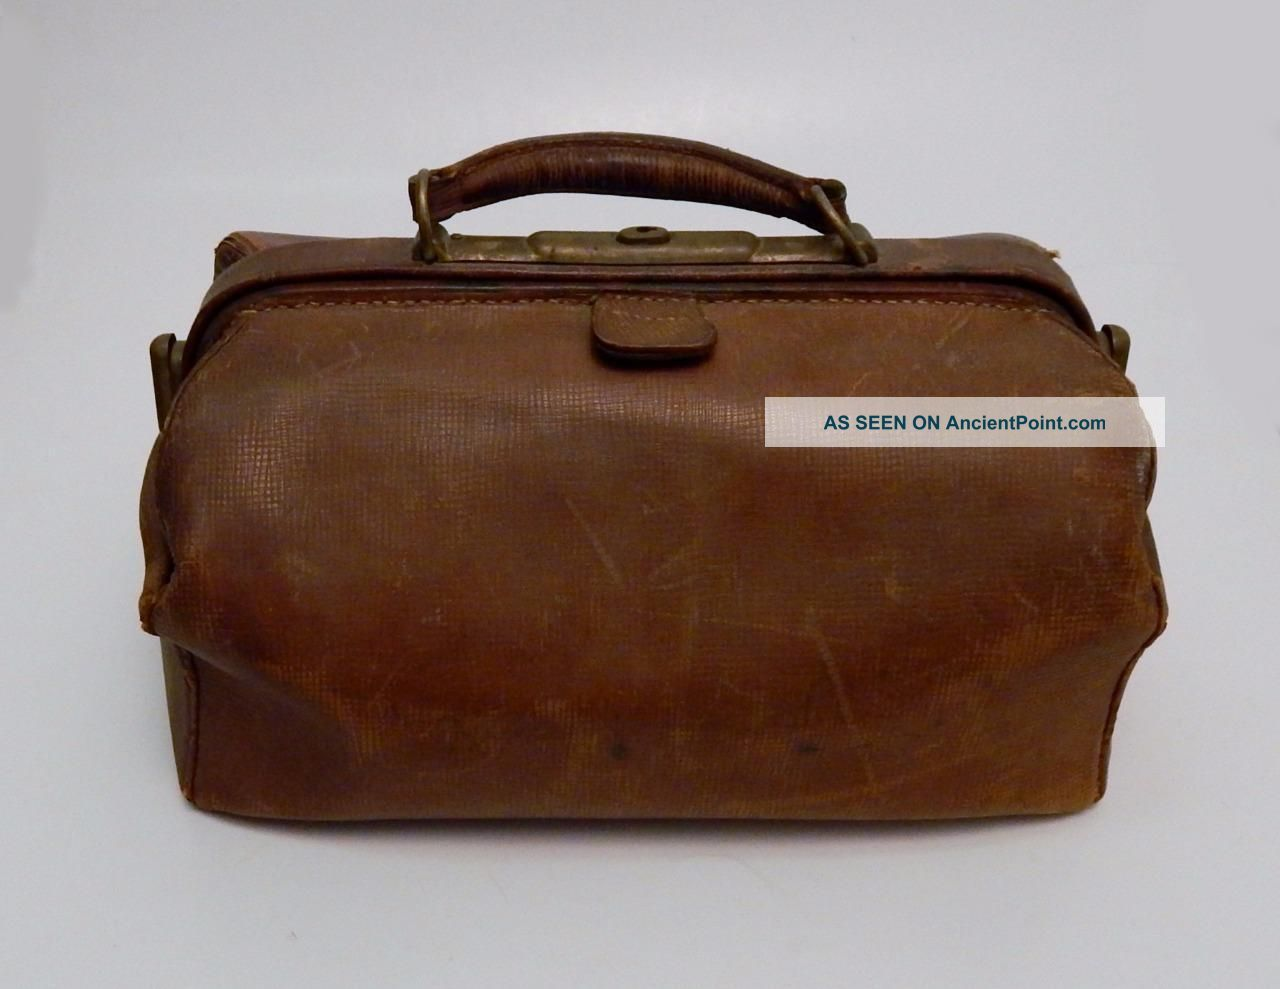 Antique Brown Leather Doctors Medical Bag Satchel With Brass Hardware Doctor Bags photo